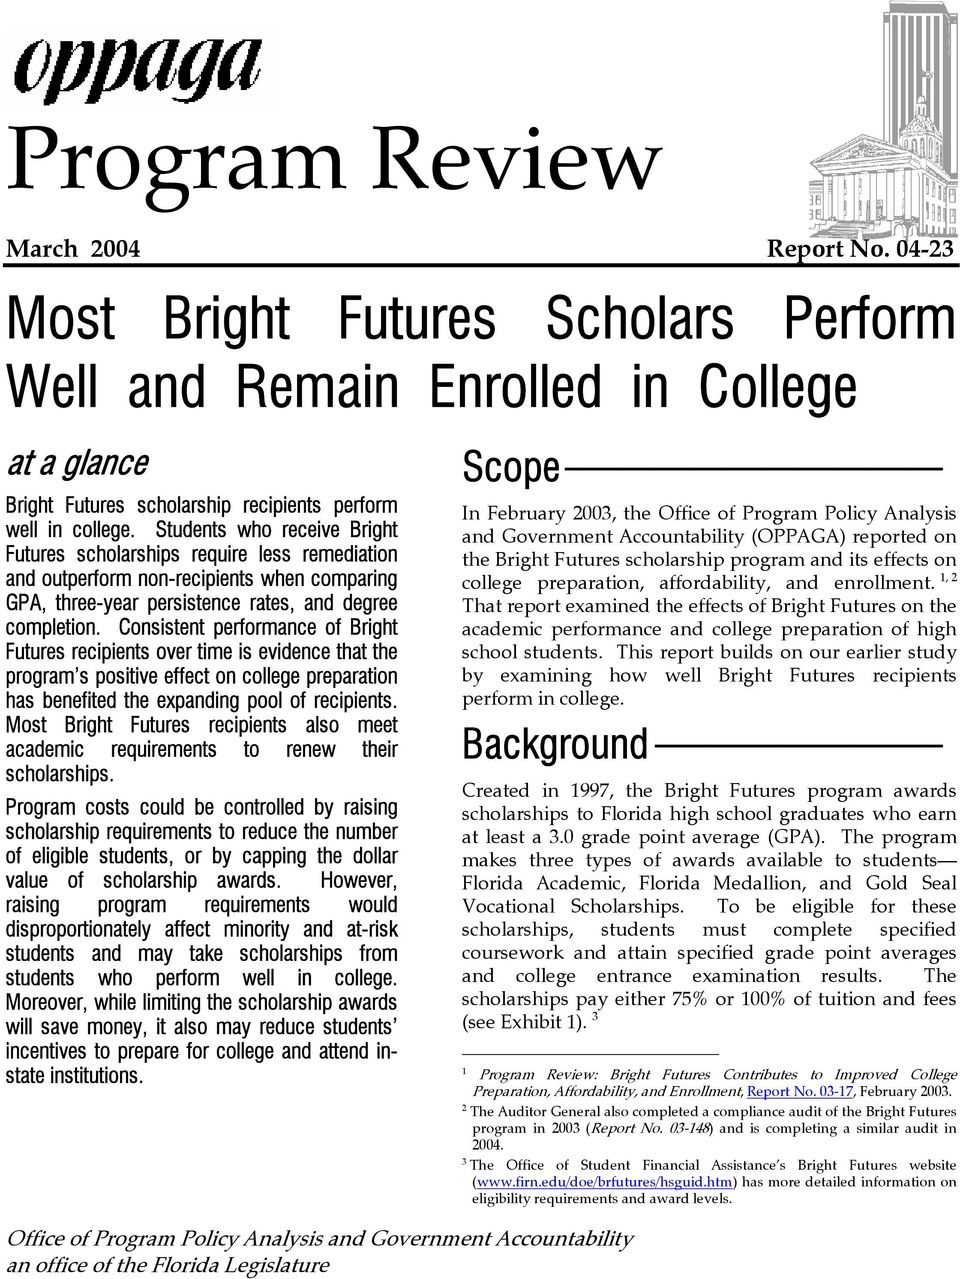 Consistent performance of Bright Futures recipients over time is evidence that the program s positive effect on college preparation has benefited the expanding pool of recipients.